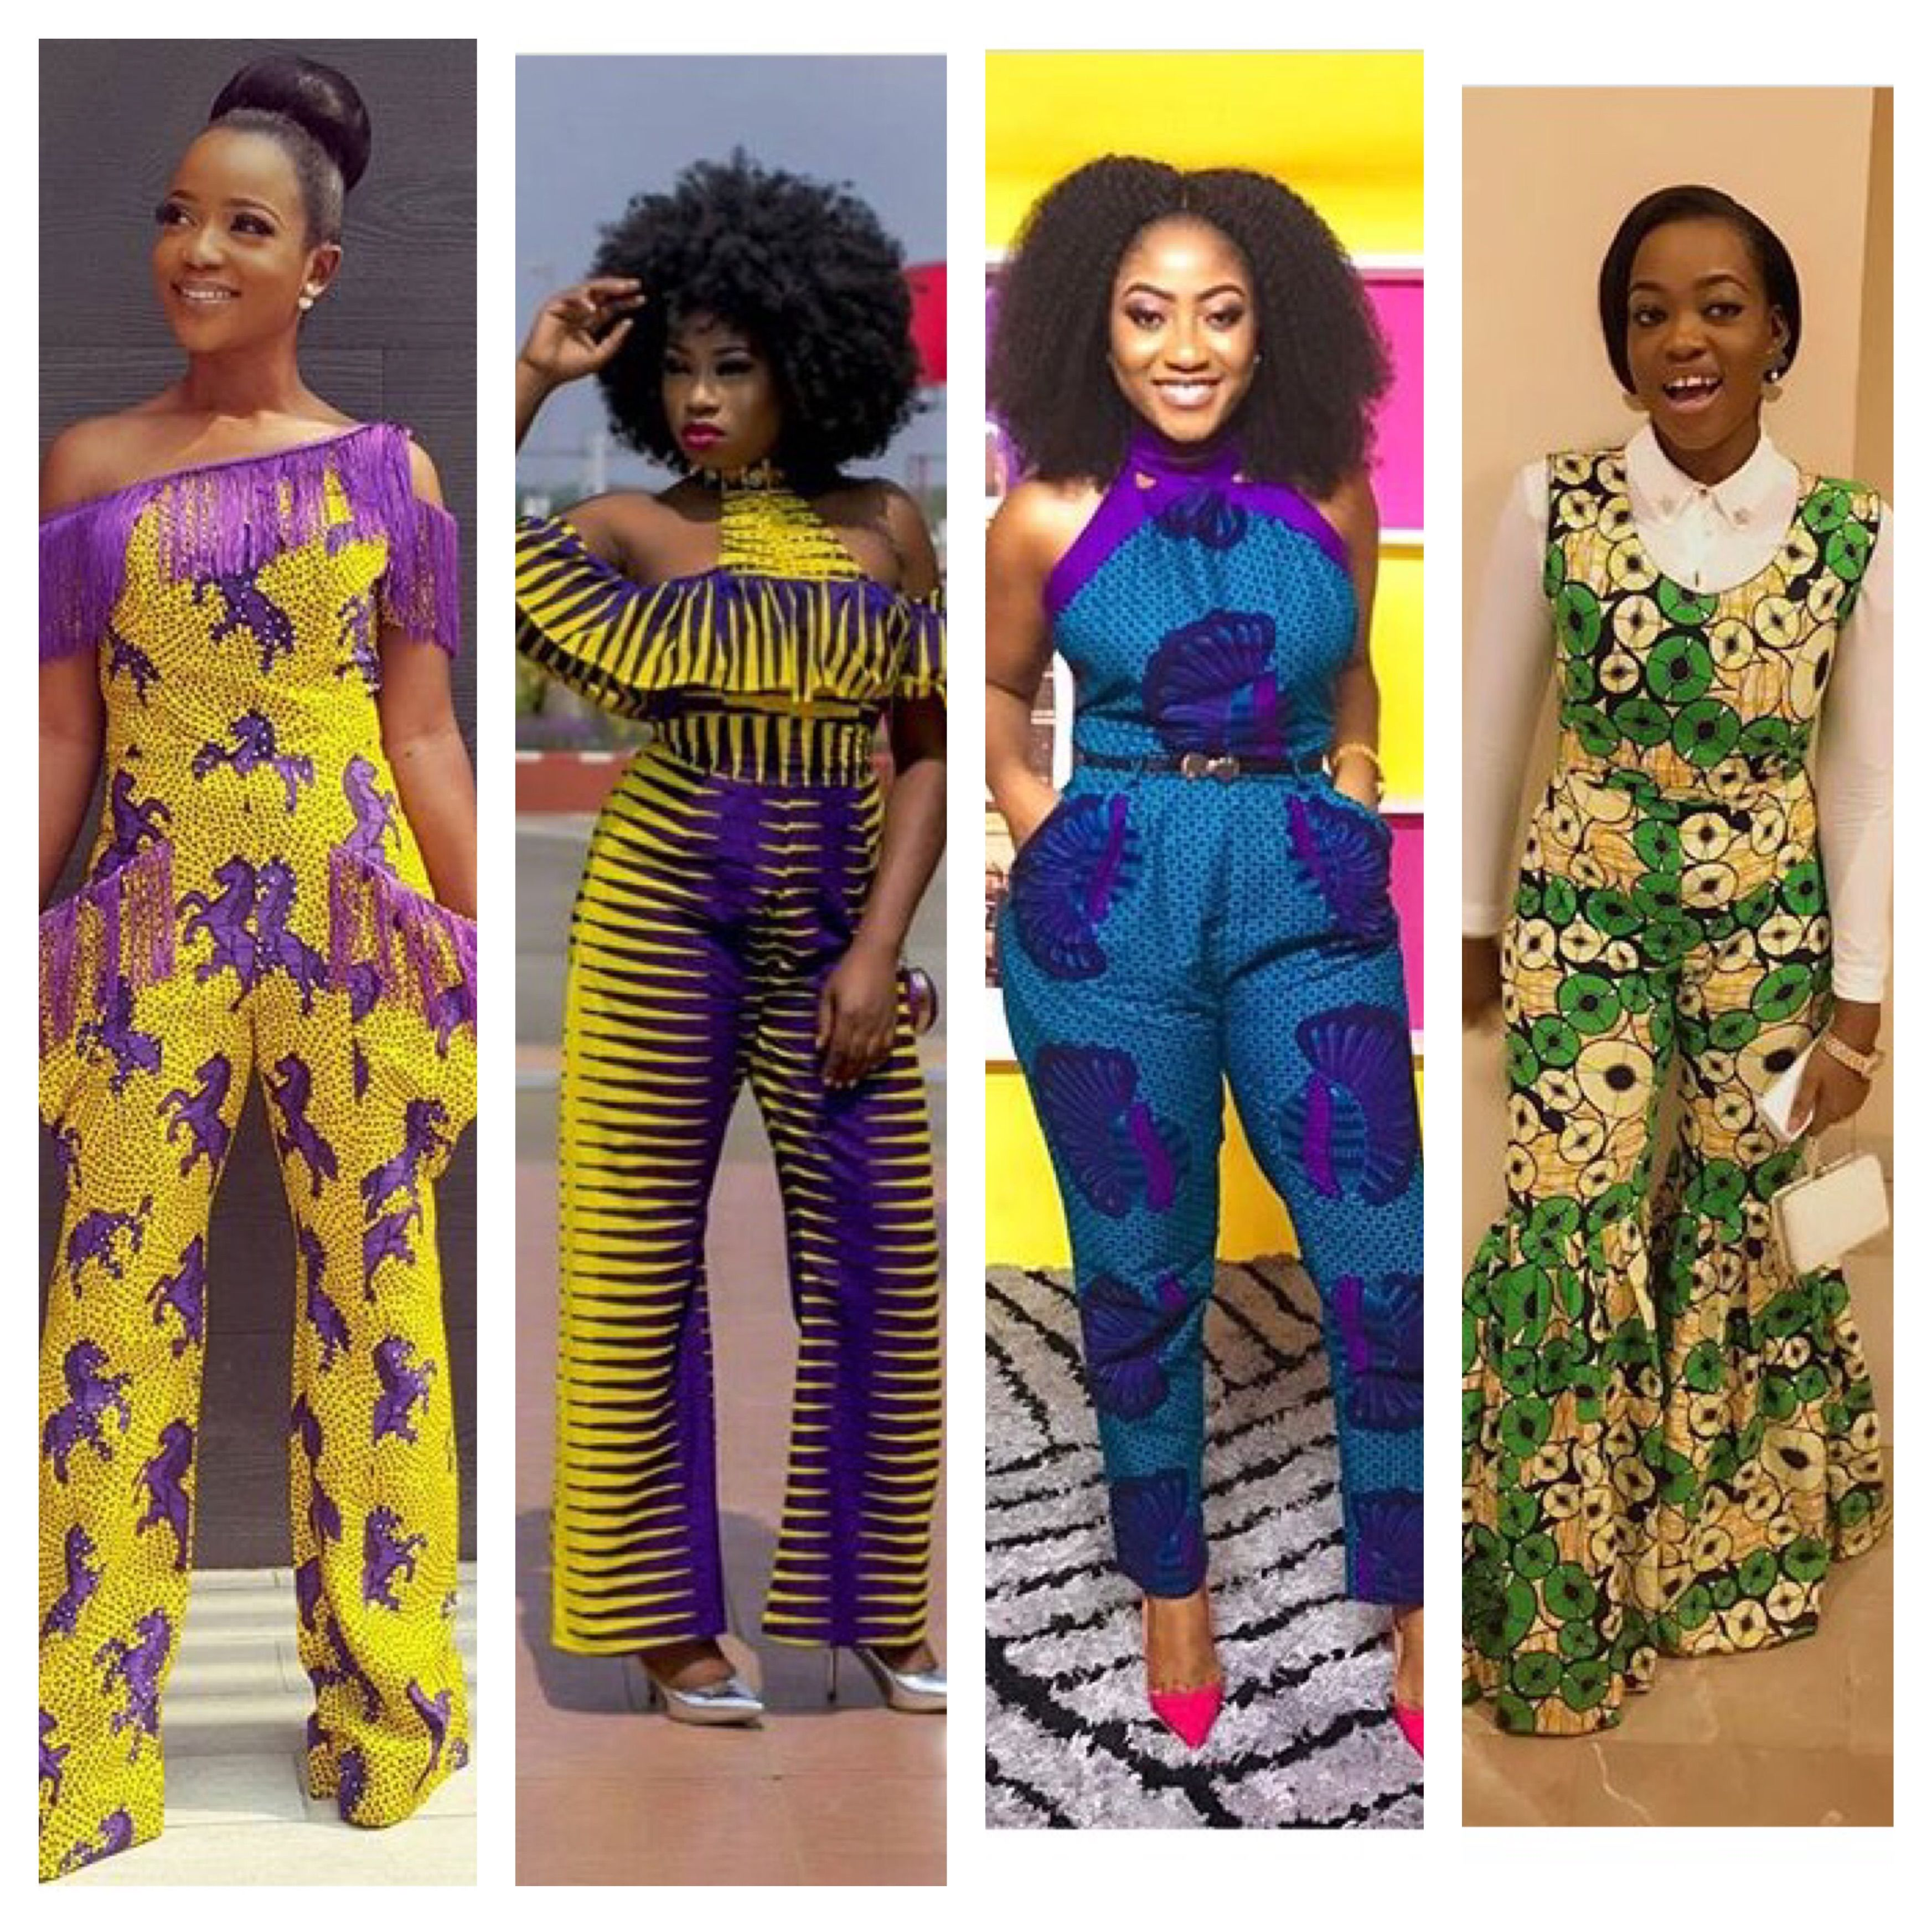 182c0018b46e Ankara jumpsuit design is now very common I'm very much convinced when I  noticed different styles in different events I attend. Ankara Jumpsuit  makes you ...